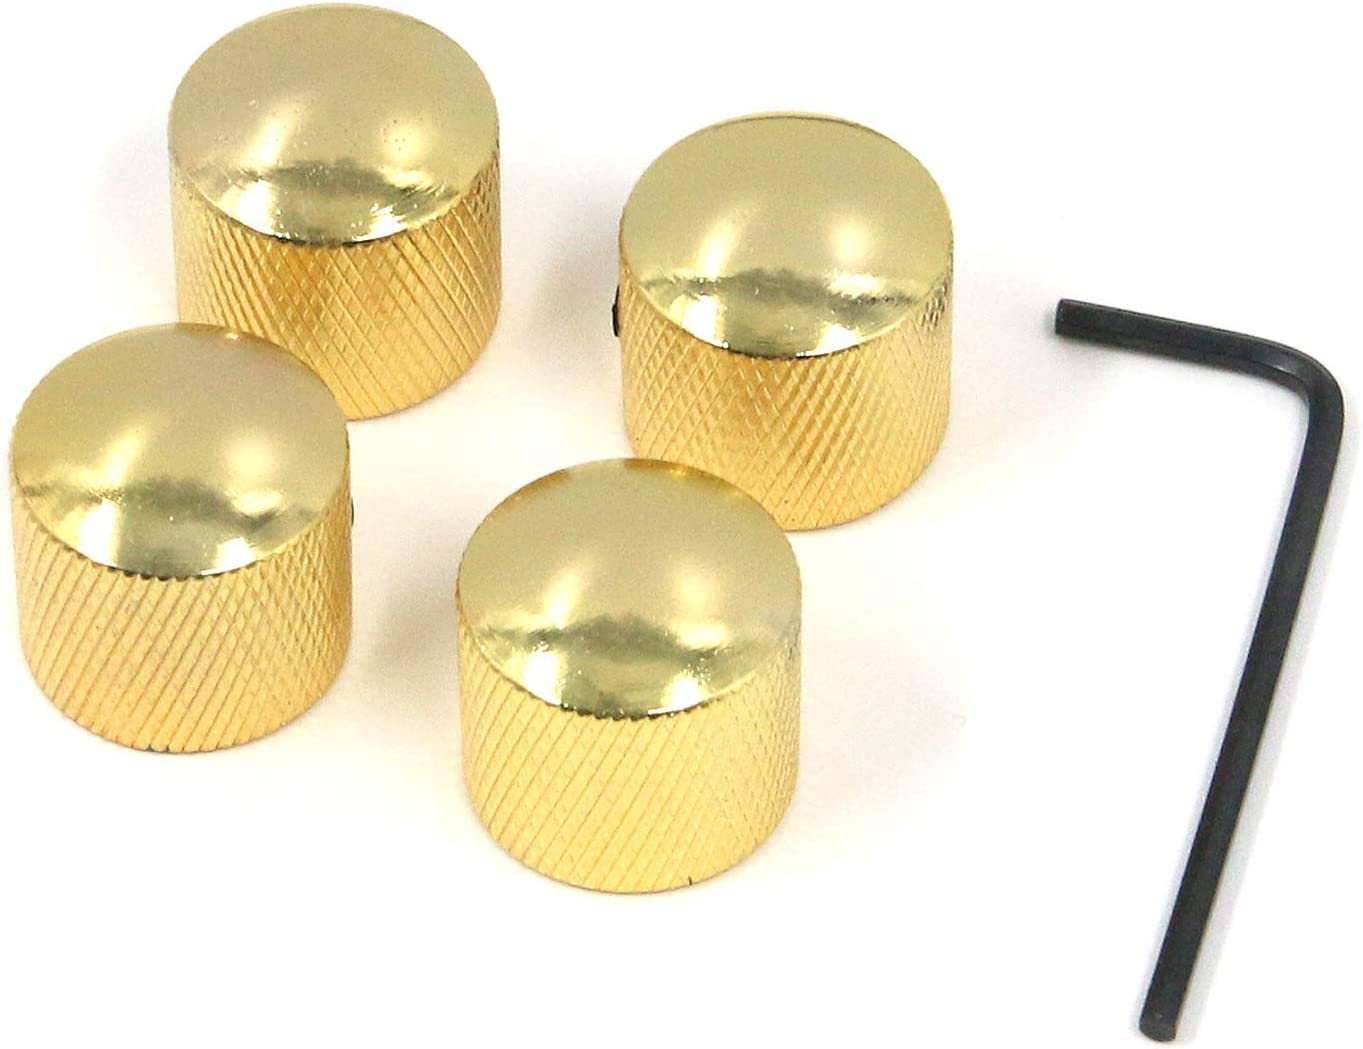 Details about  /Gold Aluminum Sound Control Rotary Switch Knob 6mm Potentiometer Volume Cap